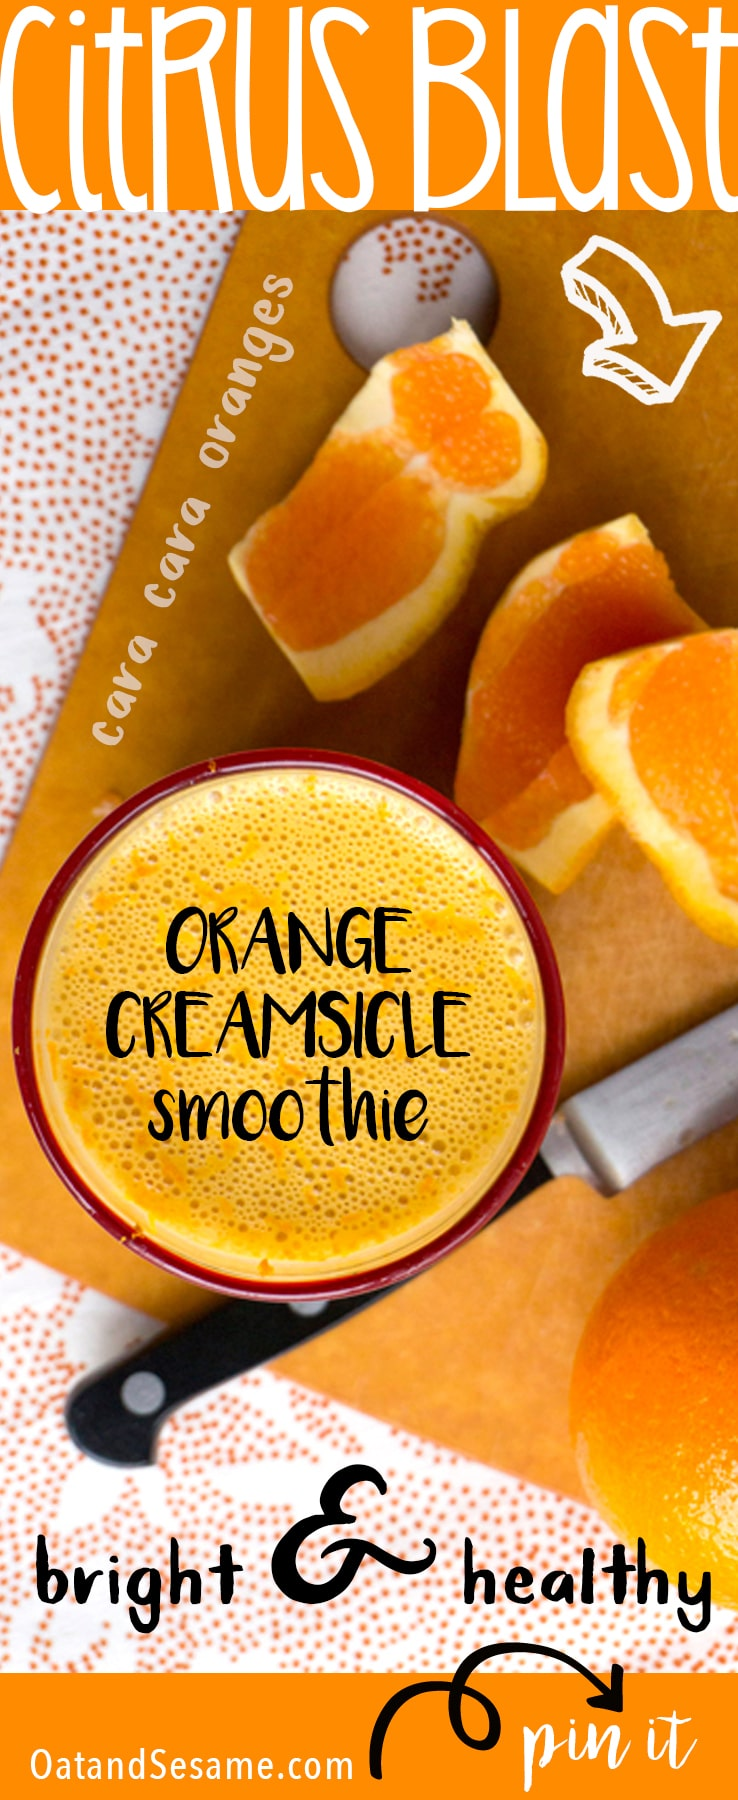 Orange Creamsicle Smoothie - Cara Cara Oranges burst into the smoothie scene in January thanks to the lovely farmers in California! Cheers to sunny skies and lots of Vitamin C!   #SMOOTHIES   #ORANGE   #BREAKFASTRECIPES   #Recipes at OatandSesame.com